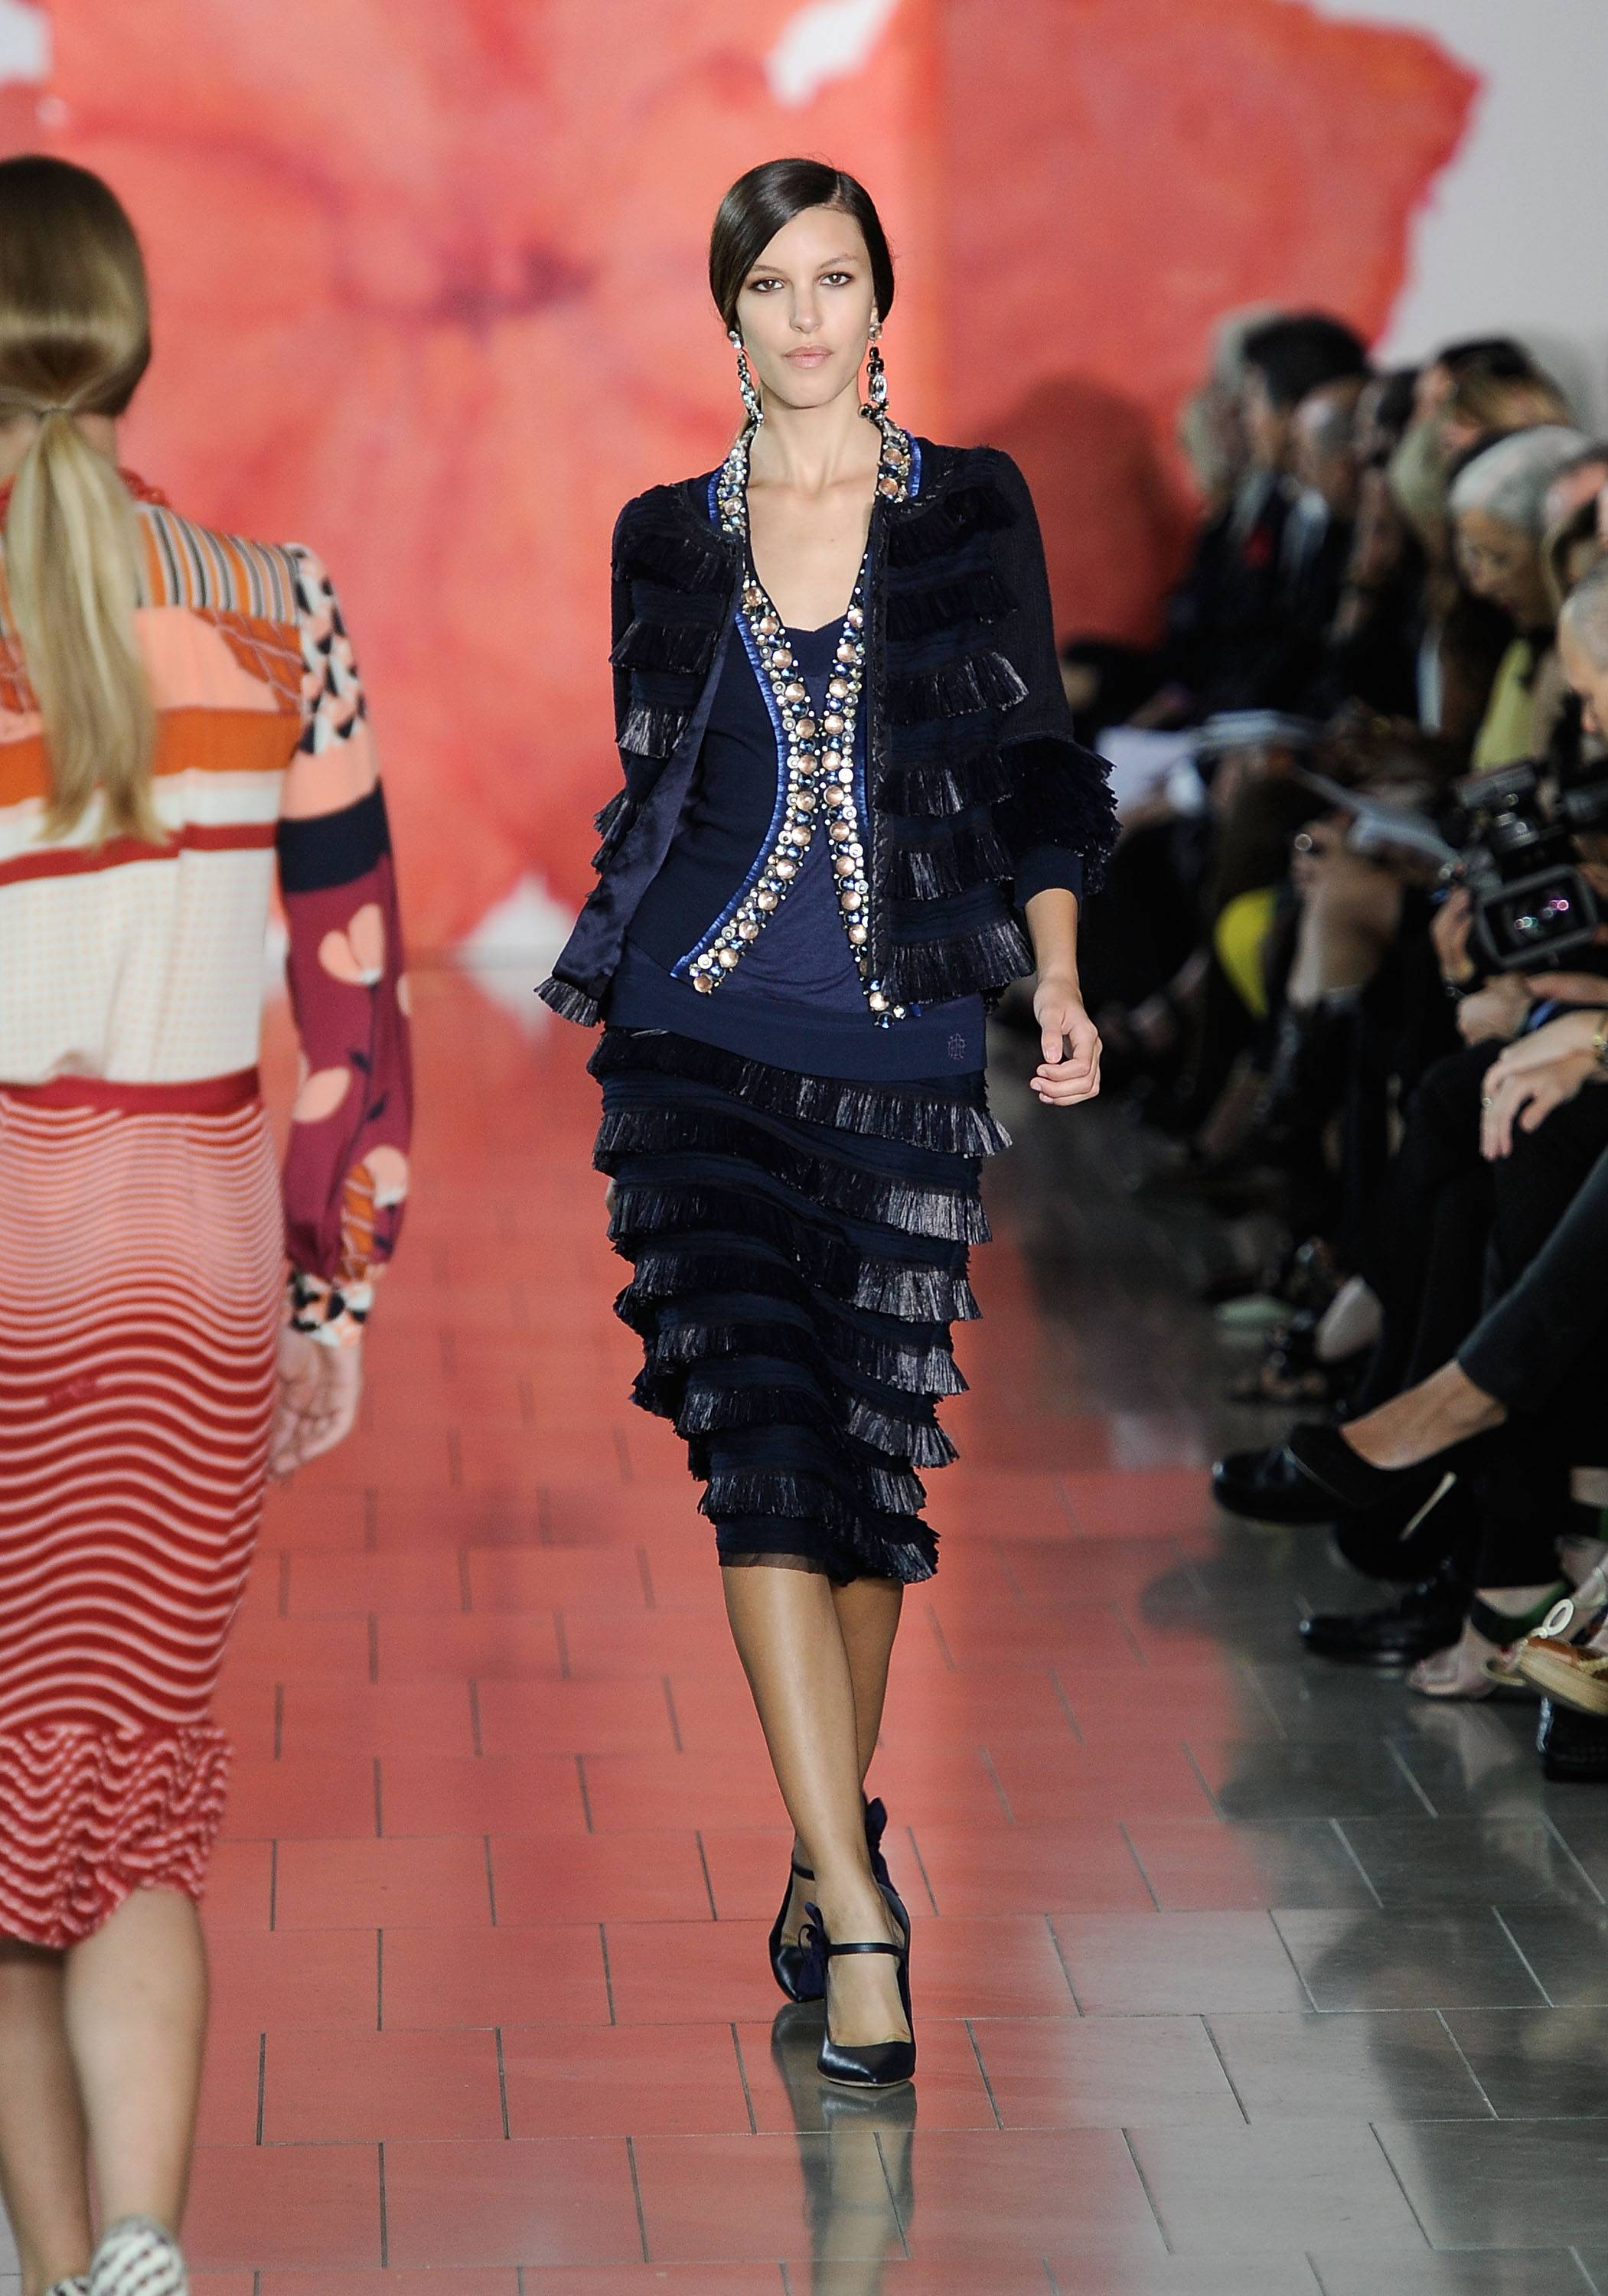 Tory Burch Runway Presentation 2, Mercedes Benz Fashion Week, s/s 2012